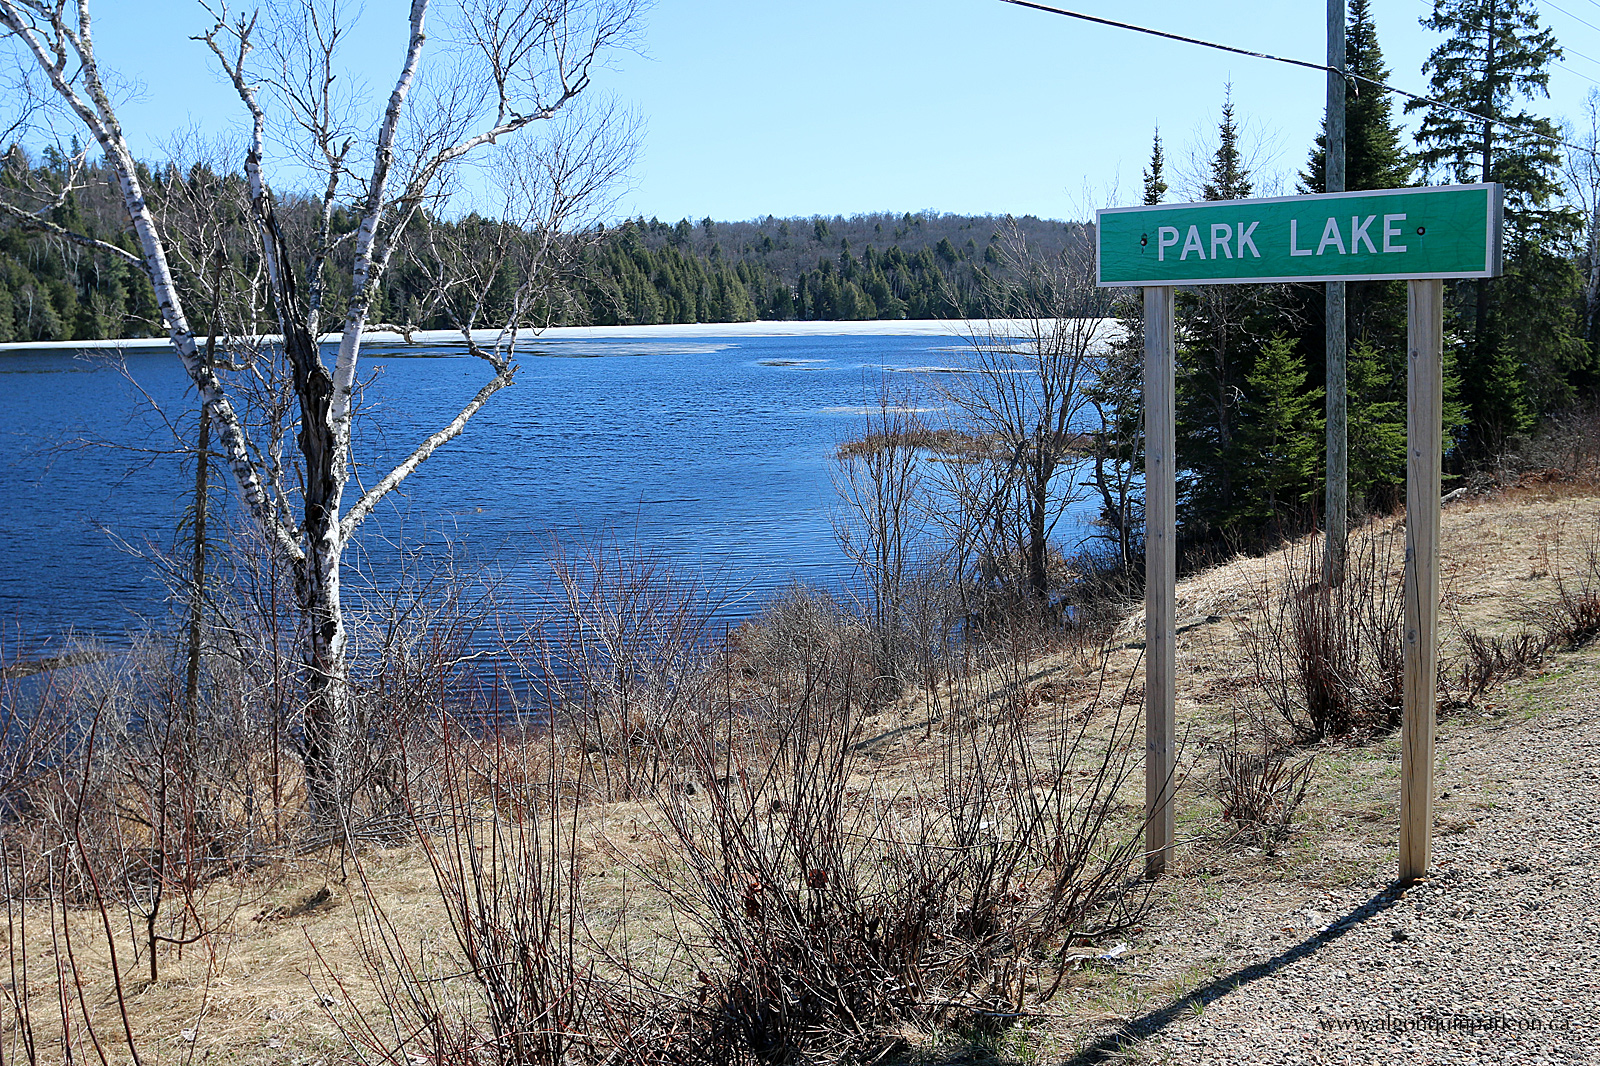 Park Lake in Algonquin Park on April 20, 2016